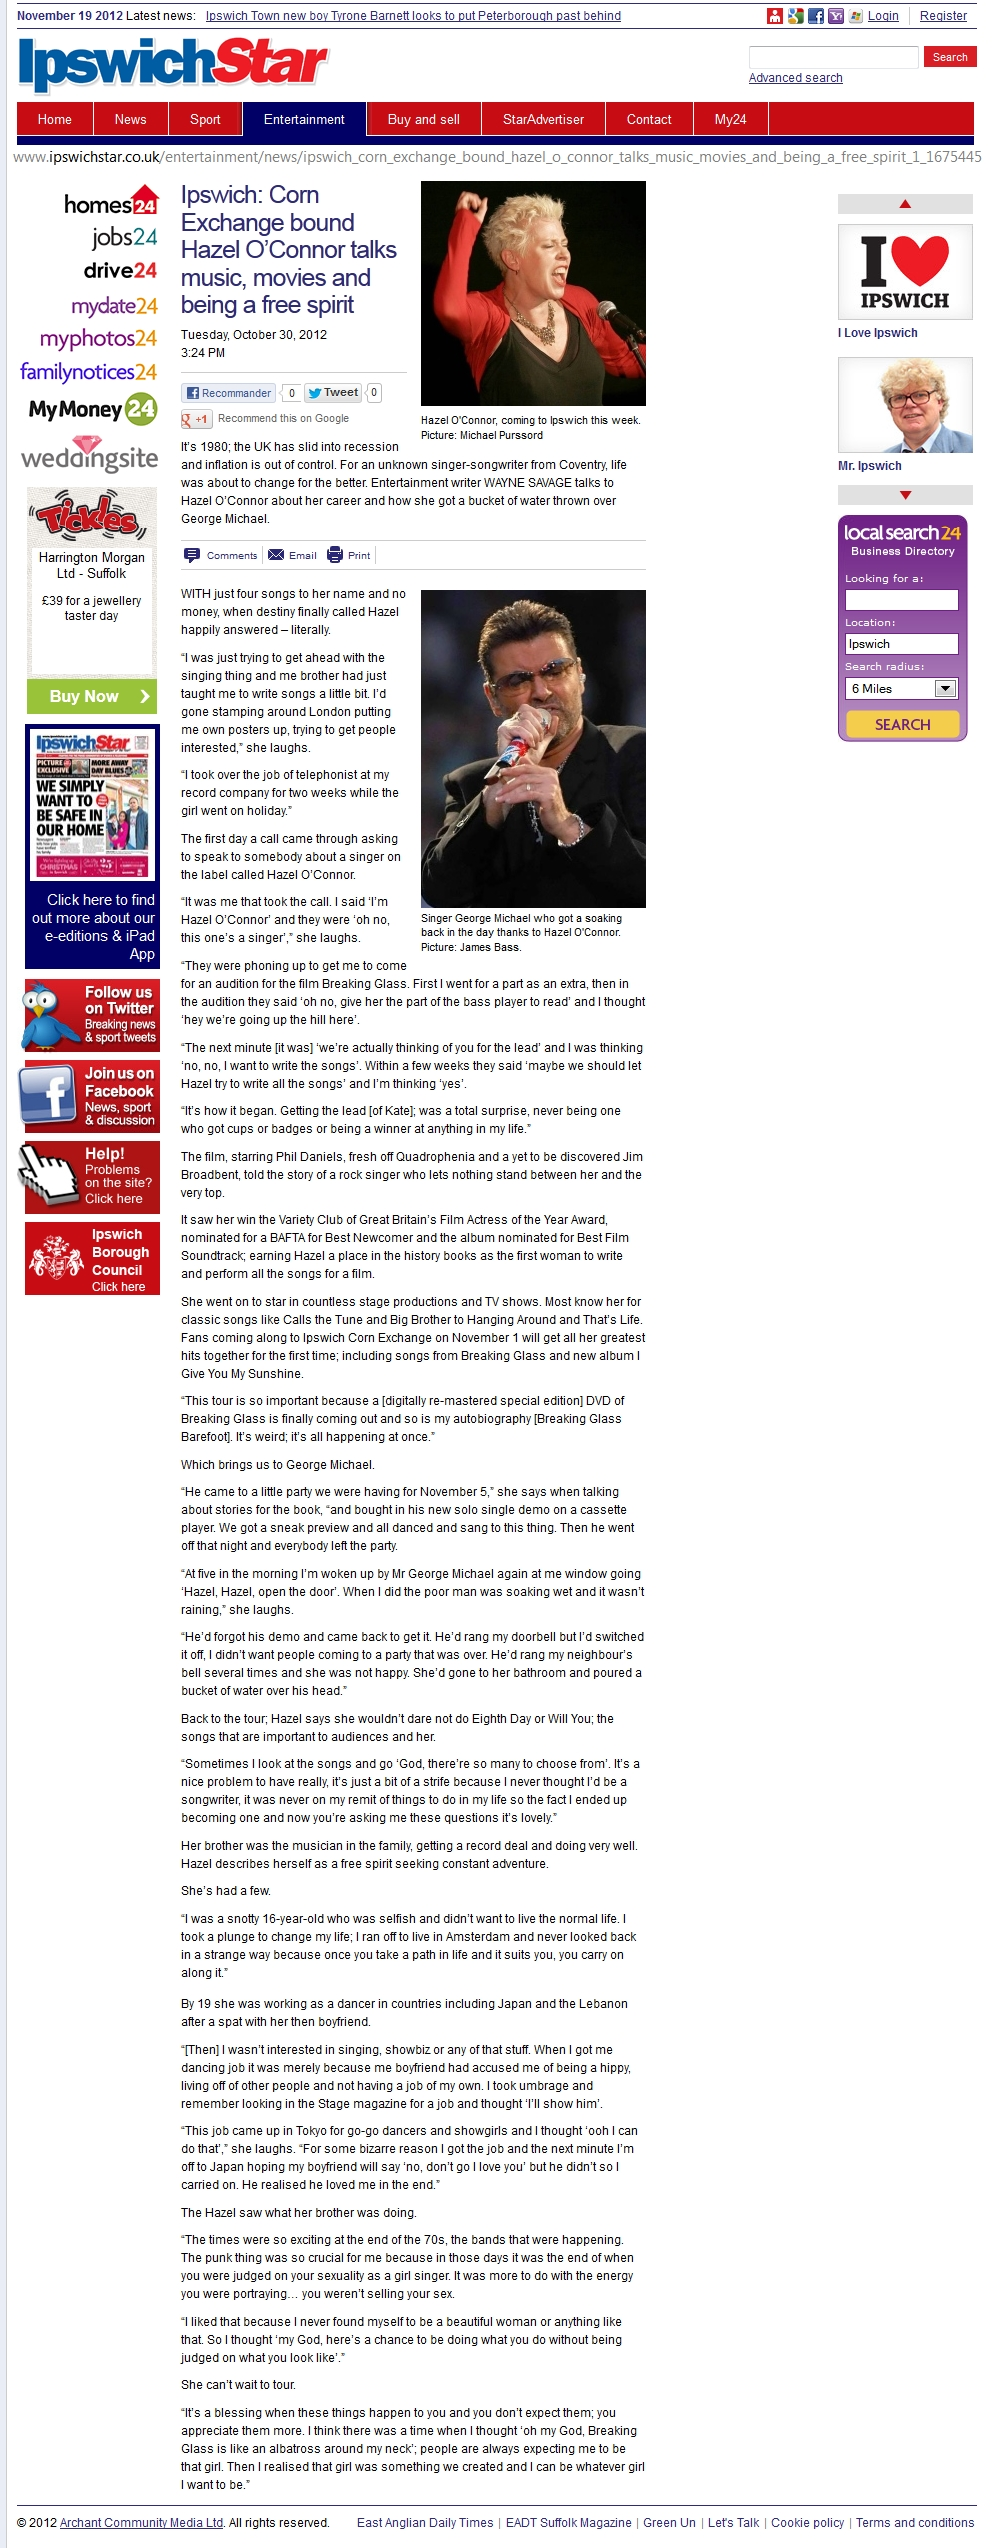 HAZEL O'CONNOR IN IPSWICH STAR - 30 OCT 2012